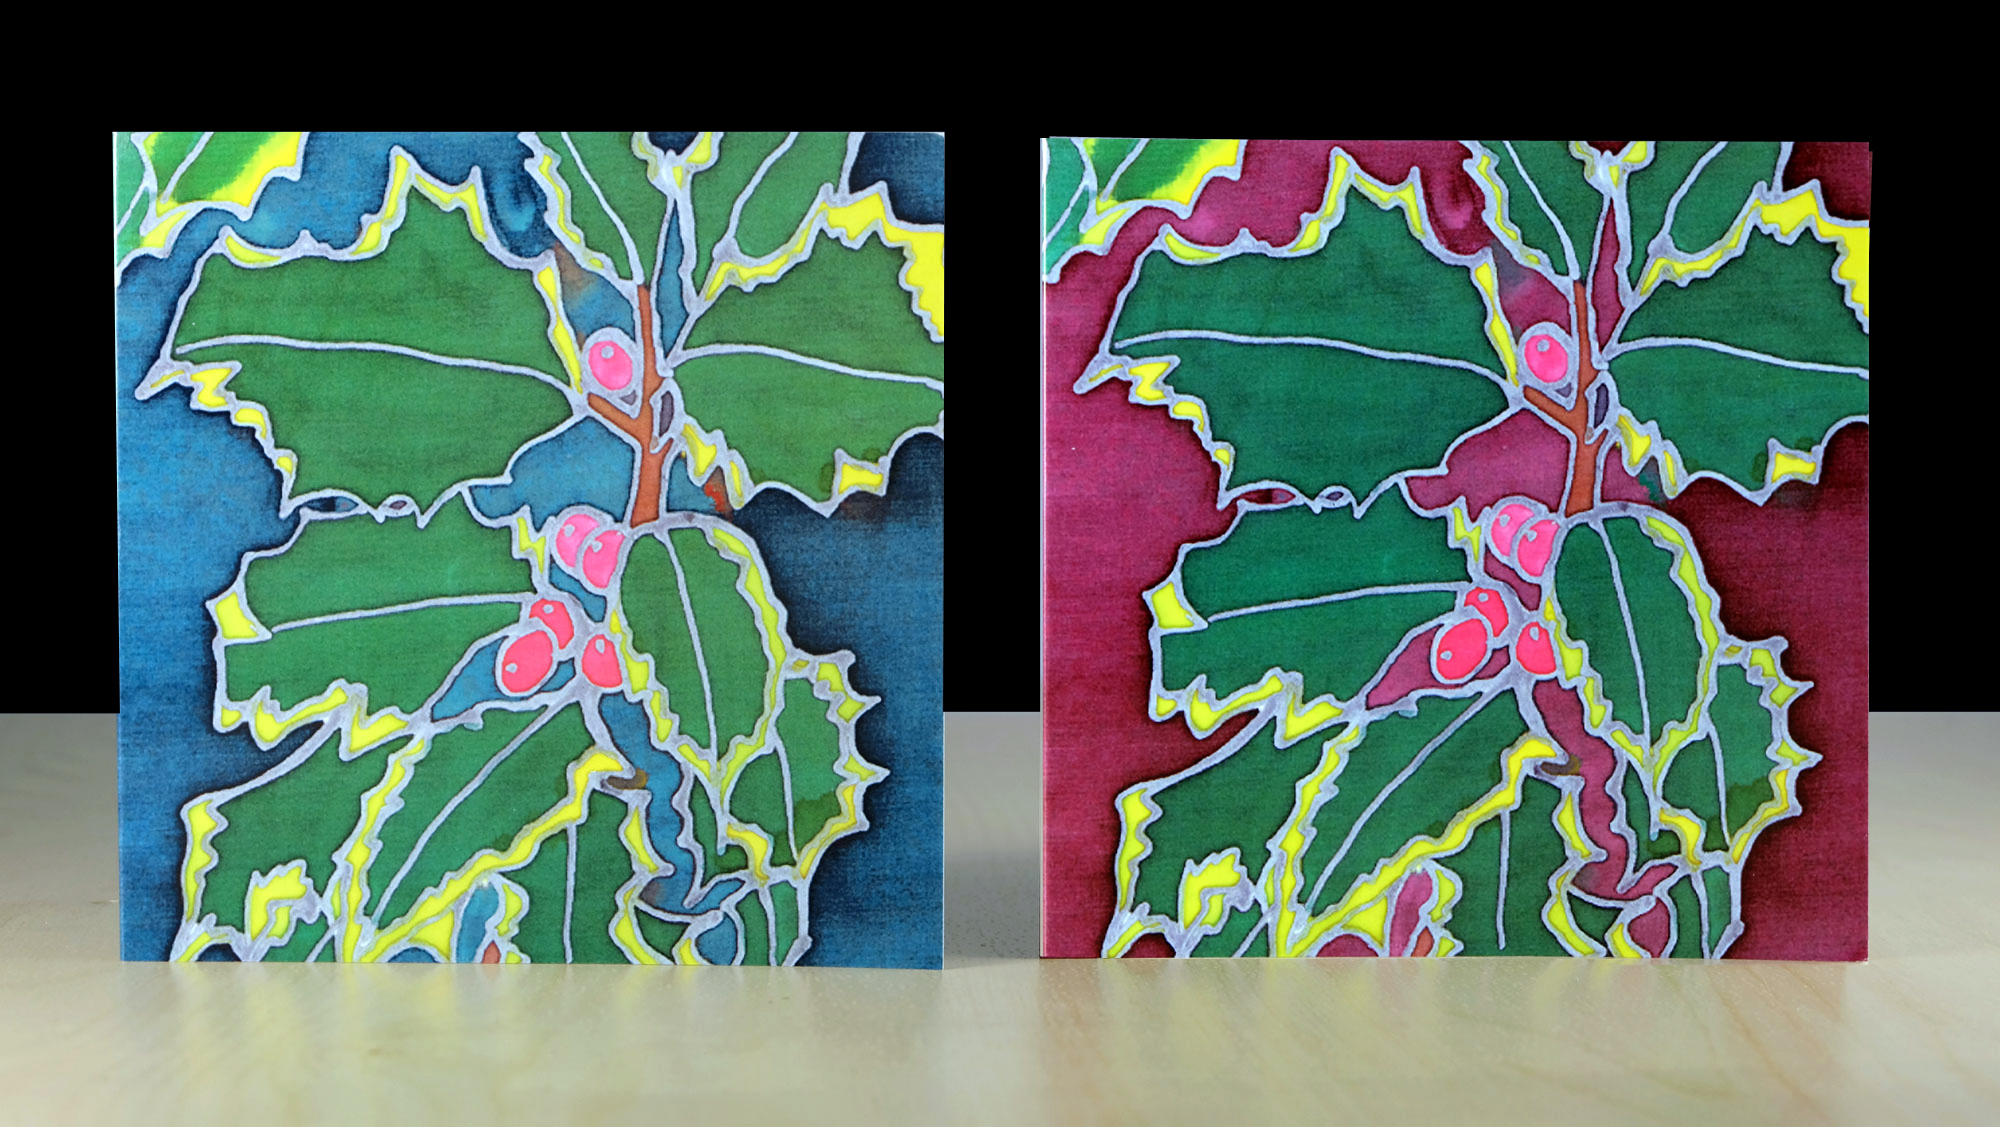 A pack of 6 quality Christmas Holly greeting cards and envelopes.   Message: Merry Christmas and a Happy New Year  Featuring original silk painted illustrations by  Sherren  McCabe-Finlayson. Other non-seasonal illustrations available include Autumn Leaves, Cow Parsley, Tulips and 'After Klimt'. These cards are perfect for quick notes, or birthday wishes  for  anyone who loves nature. You can find them all in our shop.  Printed on quality card, gloss laminated and supplied as a set of 3 red and 3 green holly in a cellophane bag, with white envelopes.  Dimensions: 13.5cm x 13.5.  Proudly designed and printed in Wales.